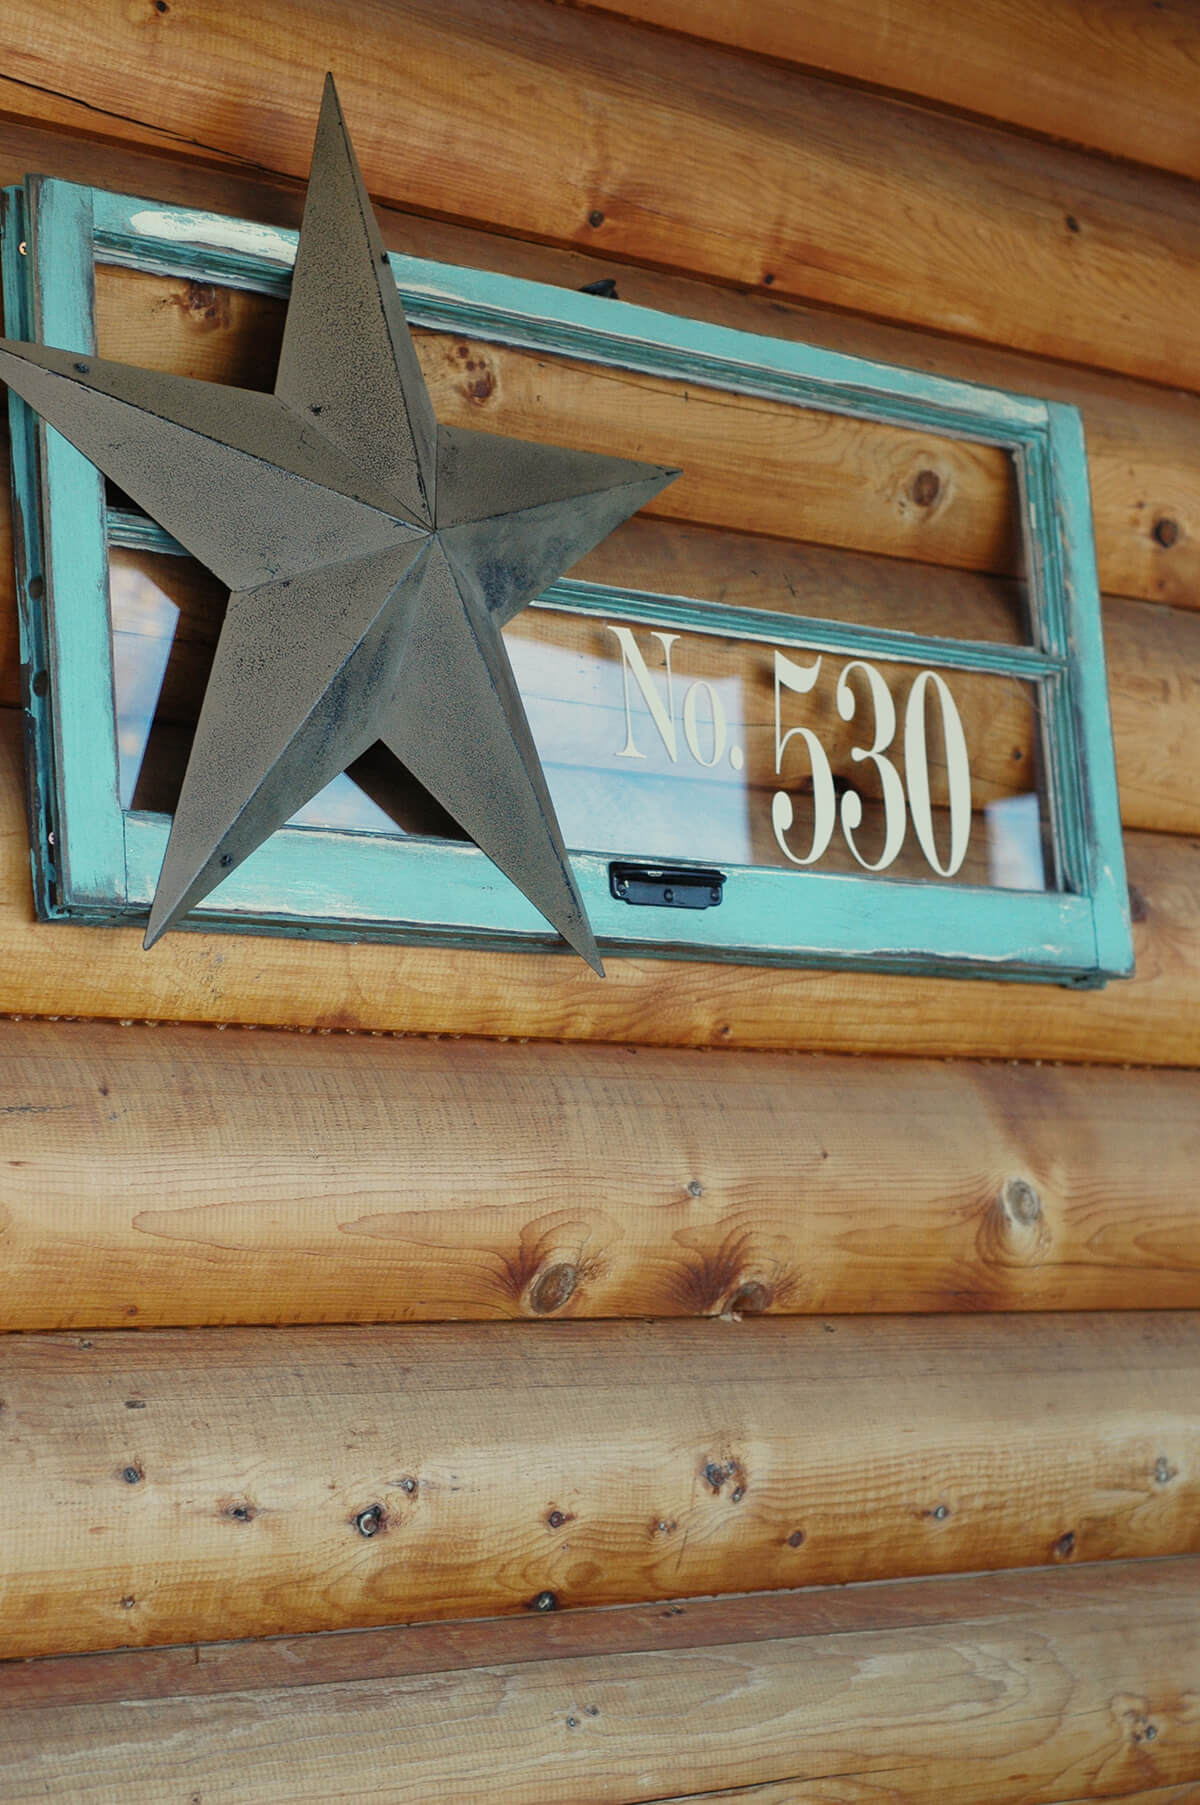 House Number Window with Metal Star